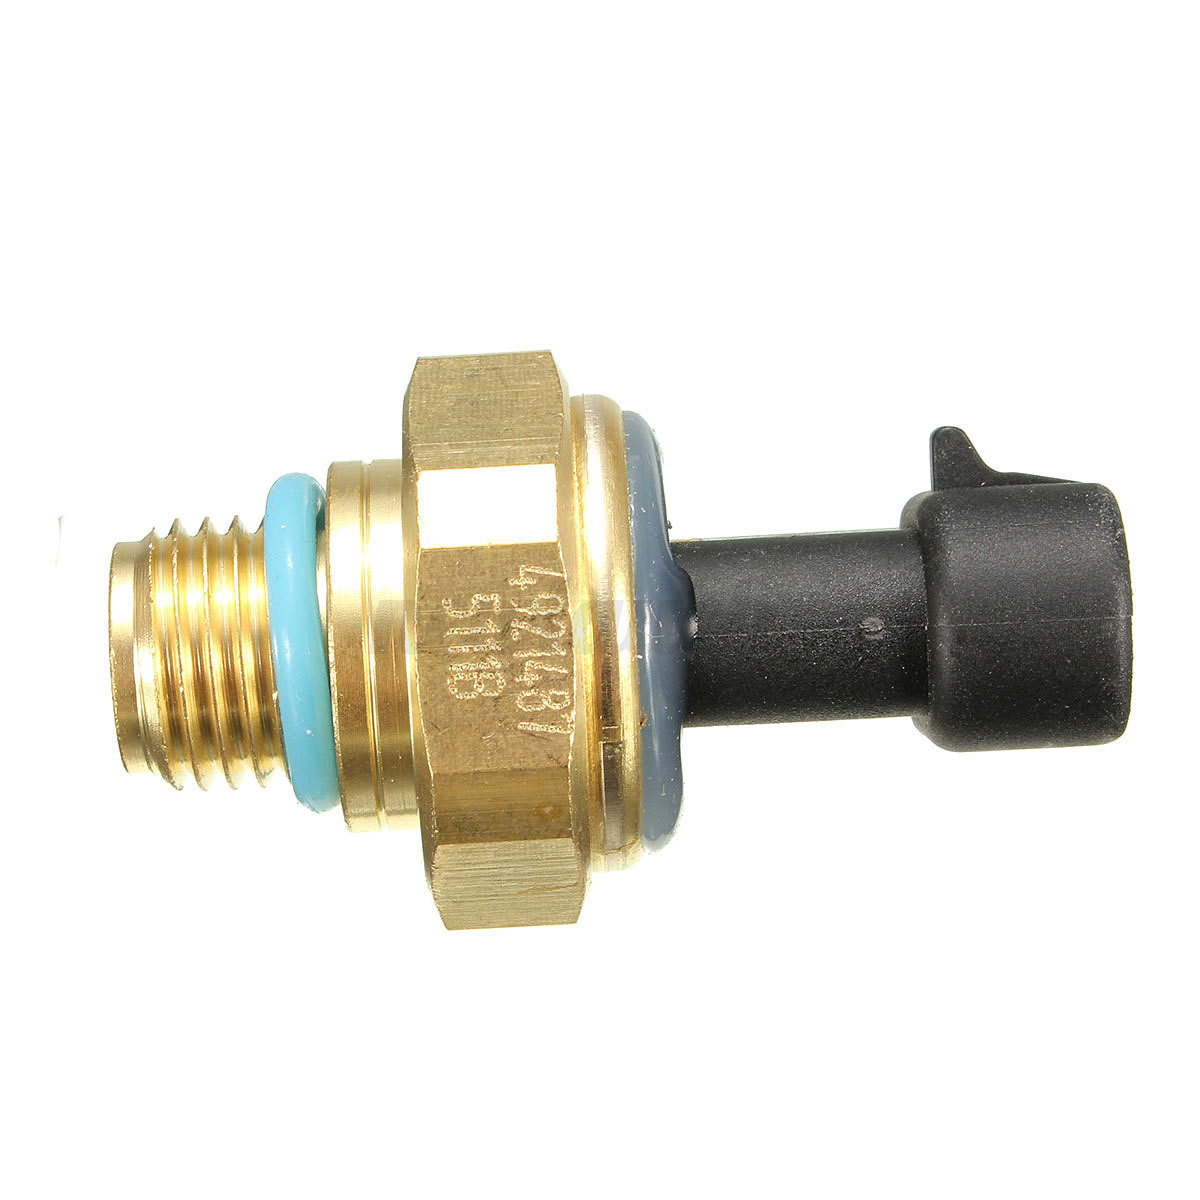 Mins 8 3 Fuel Pressure Sensor Location likewise 5 9 Mins Fuel System also General Motors Stereo Wiring Diagram as well Mins Isx Engine Fuel System Diagram together with Onan Generator Oil Pressure Switch Location. on mins isx oil pressure problems